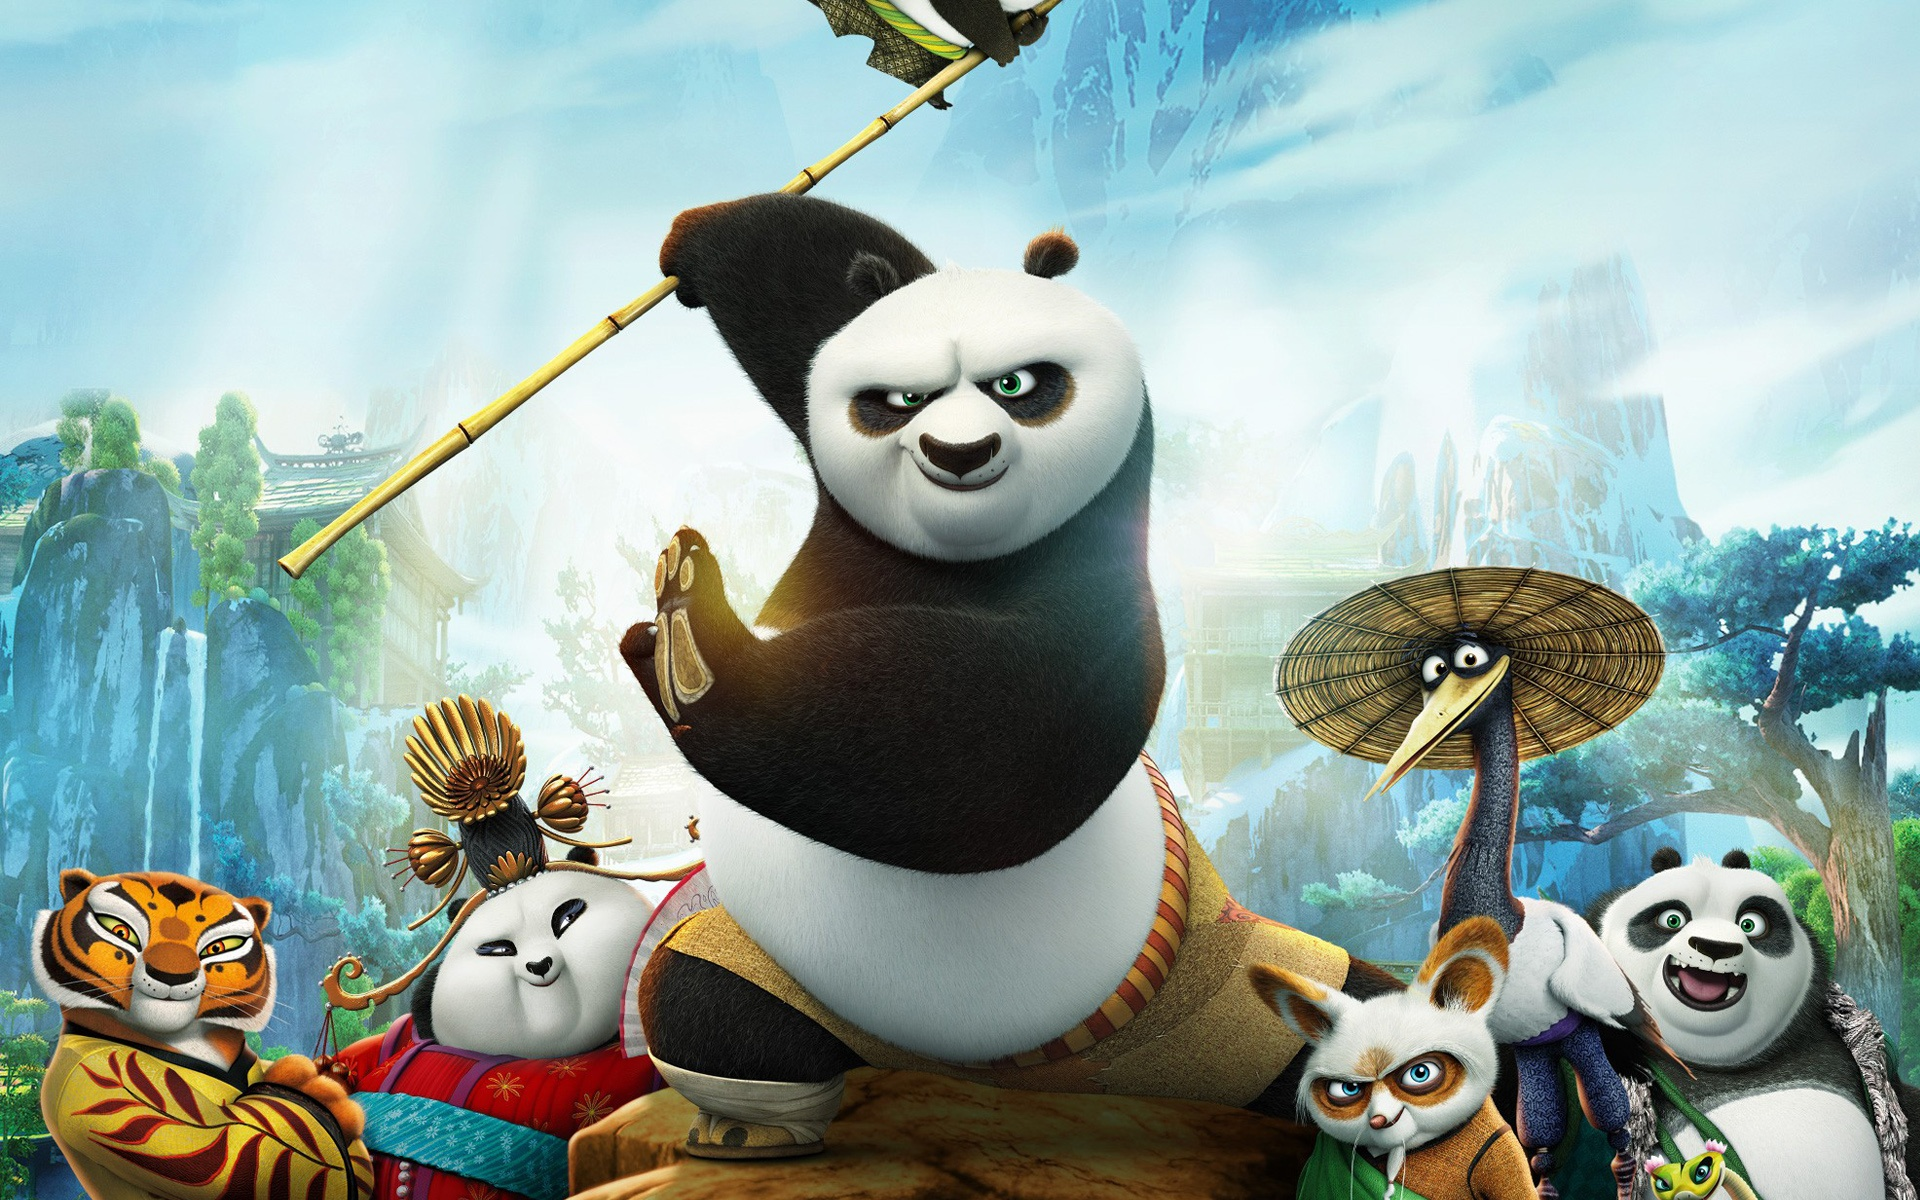 Kung fu panda 3 movie 2016 wallpapers